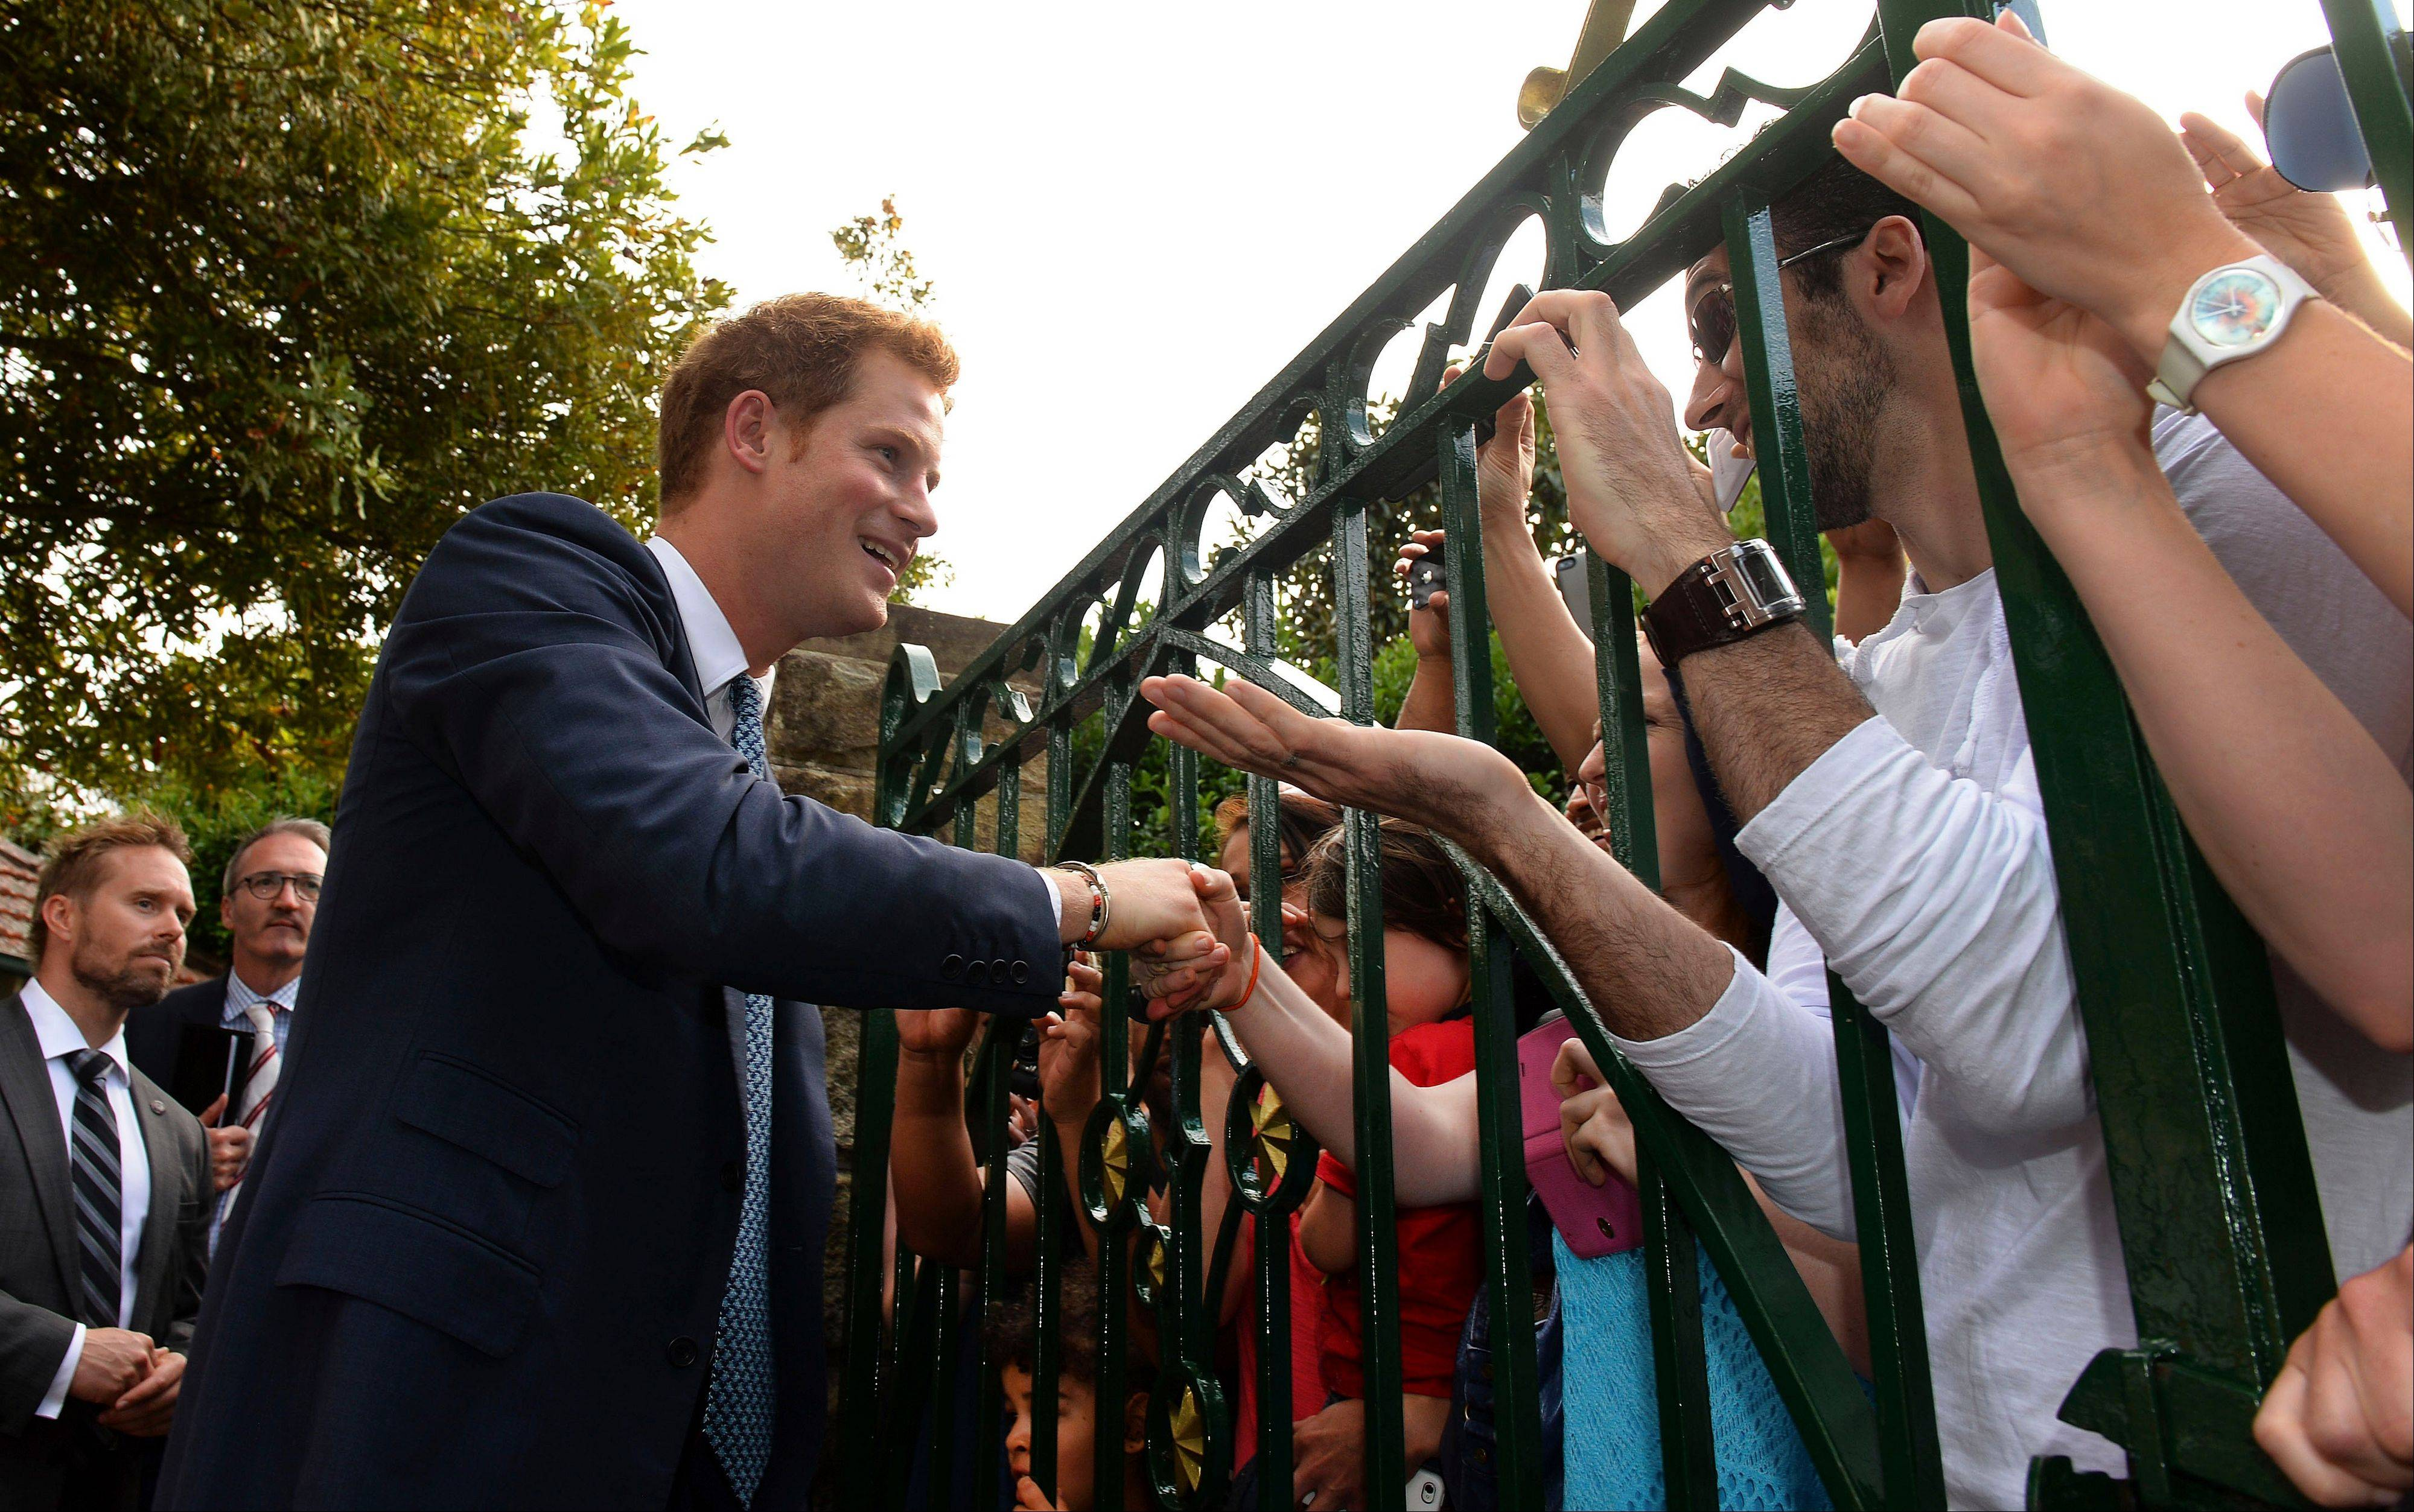 Associated Press Britain's Prince Harry, left, greets well-wishers at the gates to Kirribilli House, the prime minister's residence in Sydney, Saturday, Oct. 5. Harry, fourth in line to the British throne, is in Australia's largest city for just one day as part of a quick trip Down Under.